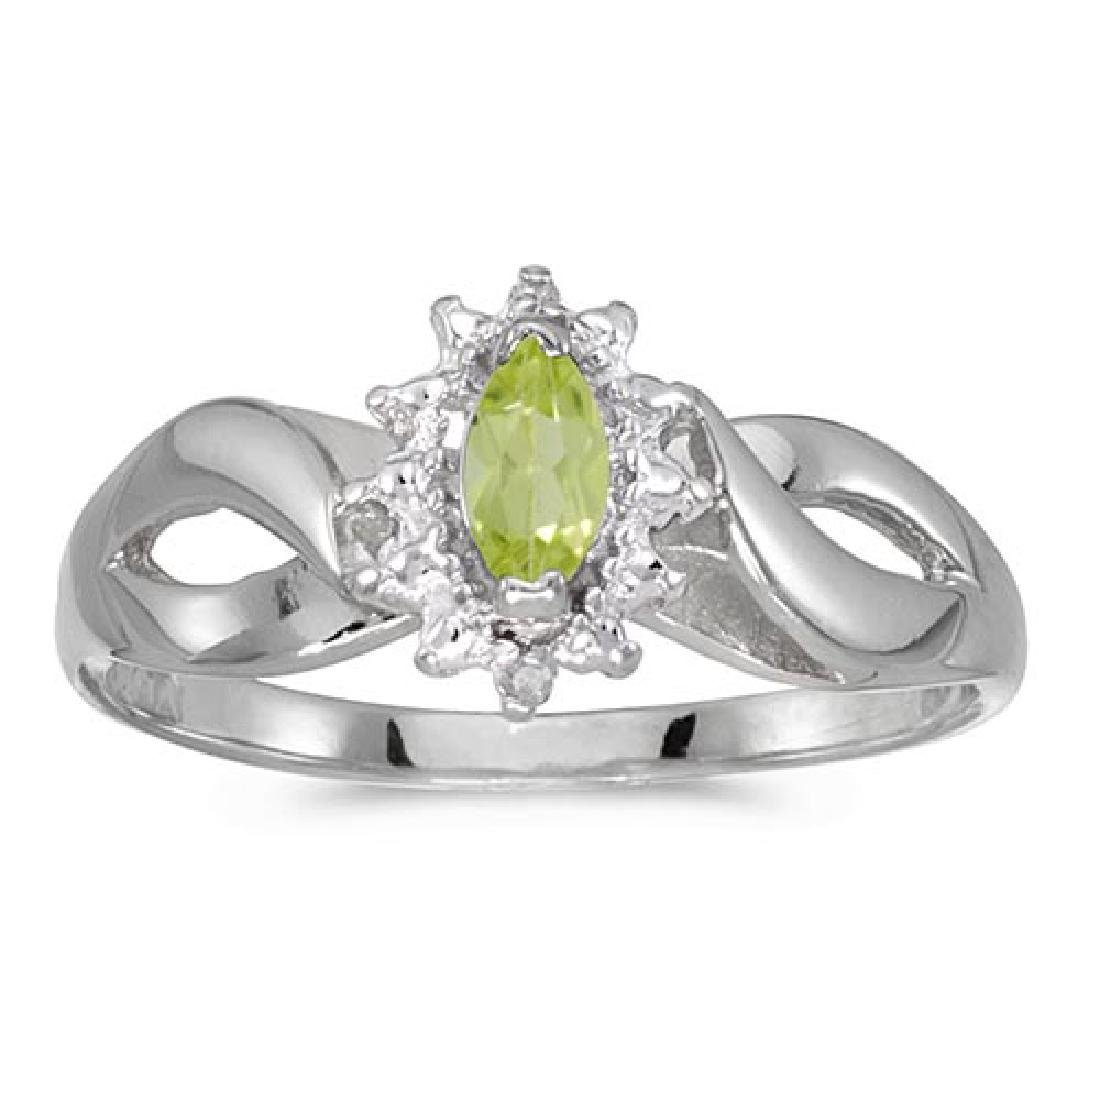 Certified 10k White Gold Marquise Peridot And Diamond R